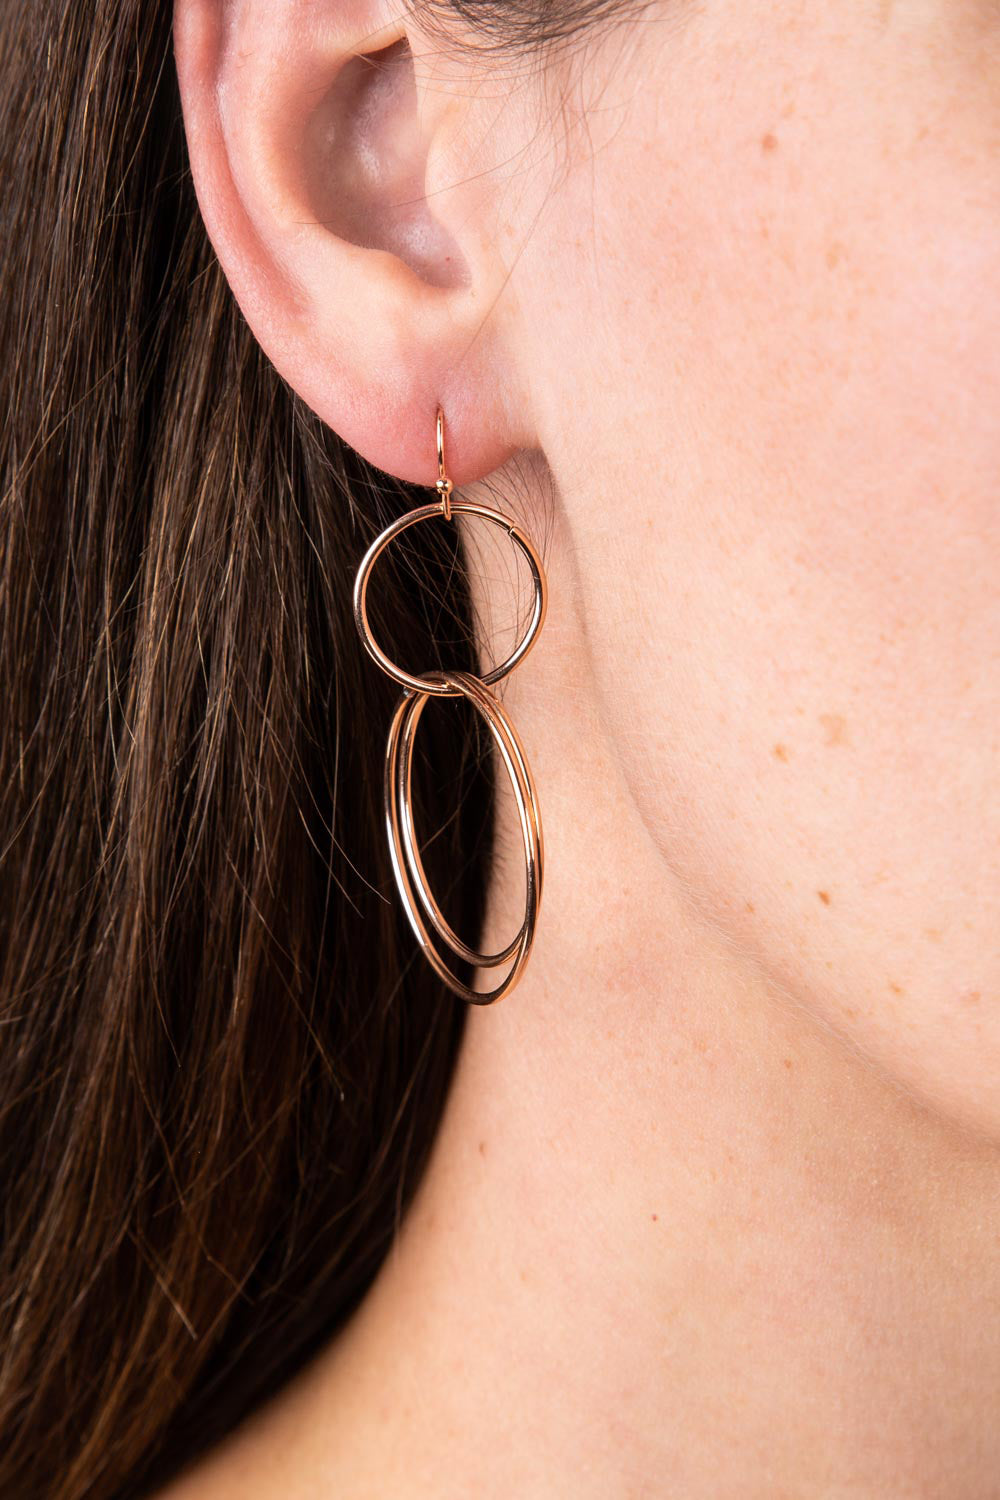 Type 1 Loop-Dee-Loop Earrings